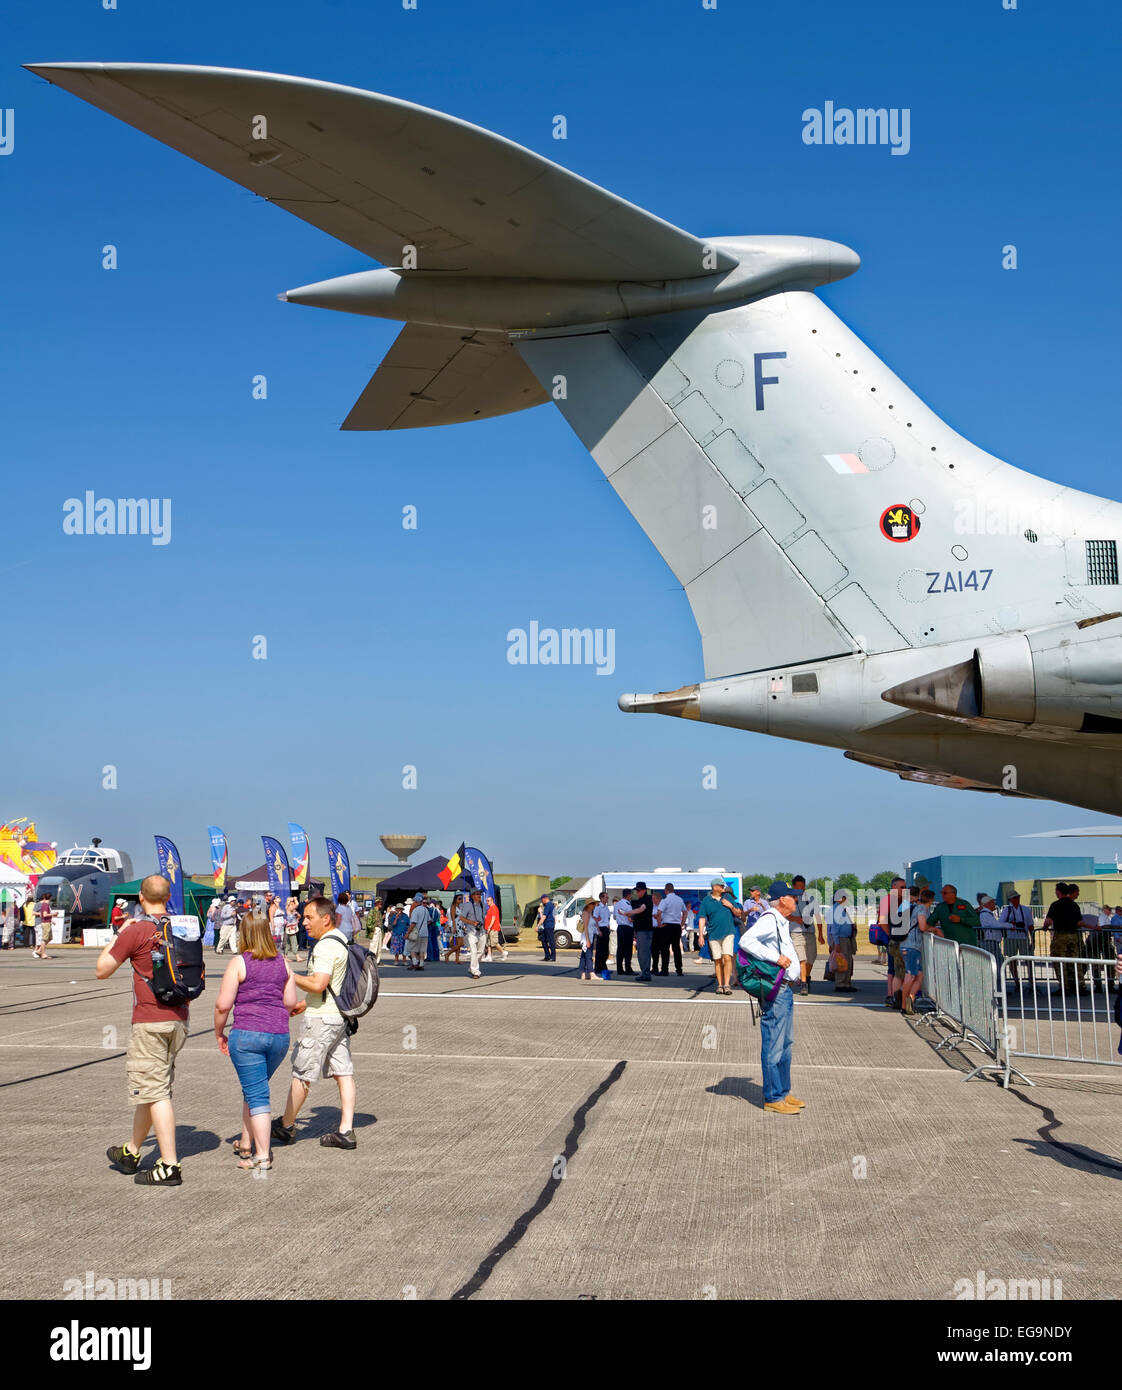 The tail assembly of a Vickers VC10 towers above air show spectators. - Stock Image